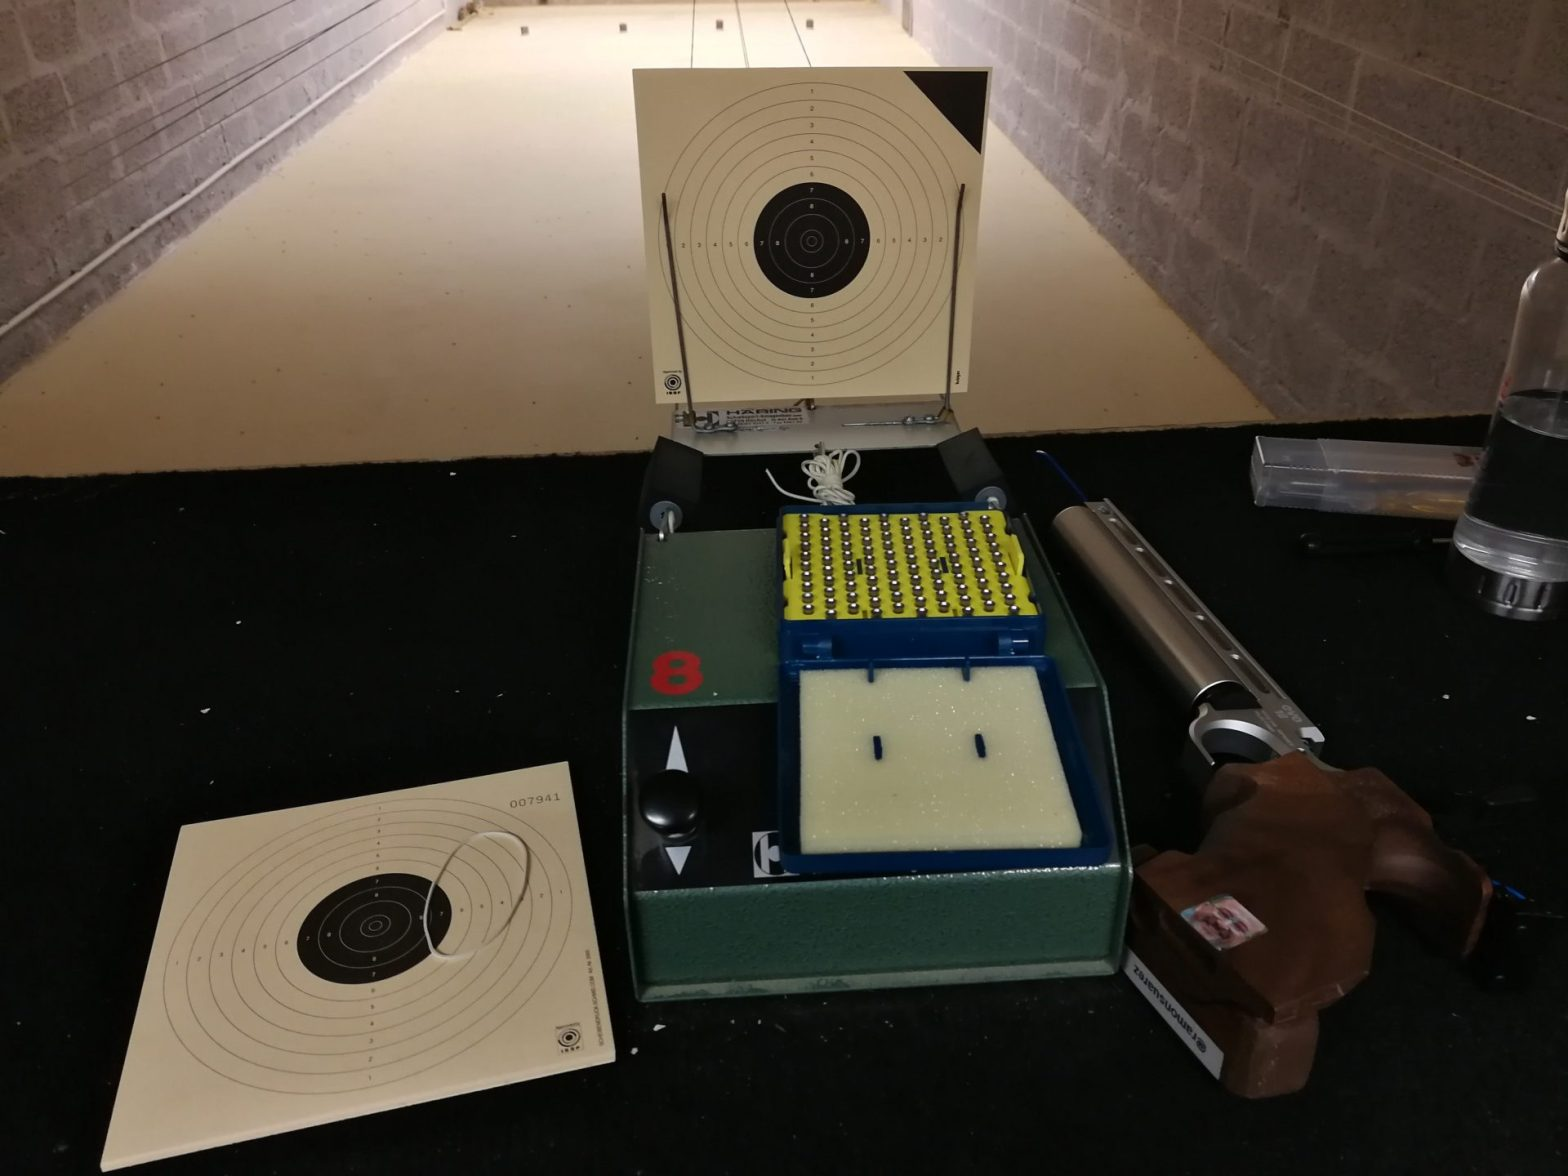 air-gun-targets-stand-sauvagere-shooting-range-brussels.